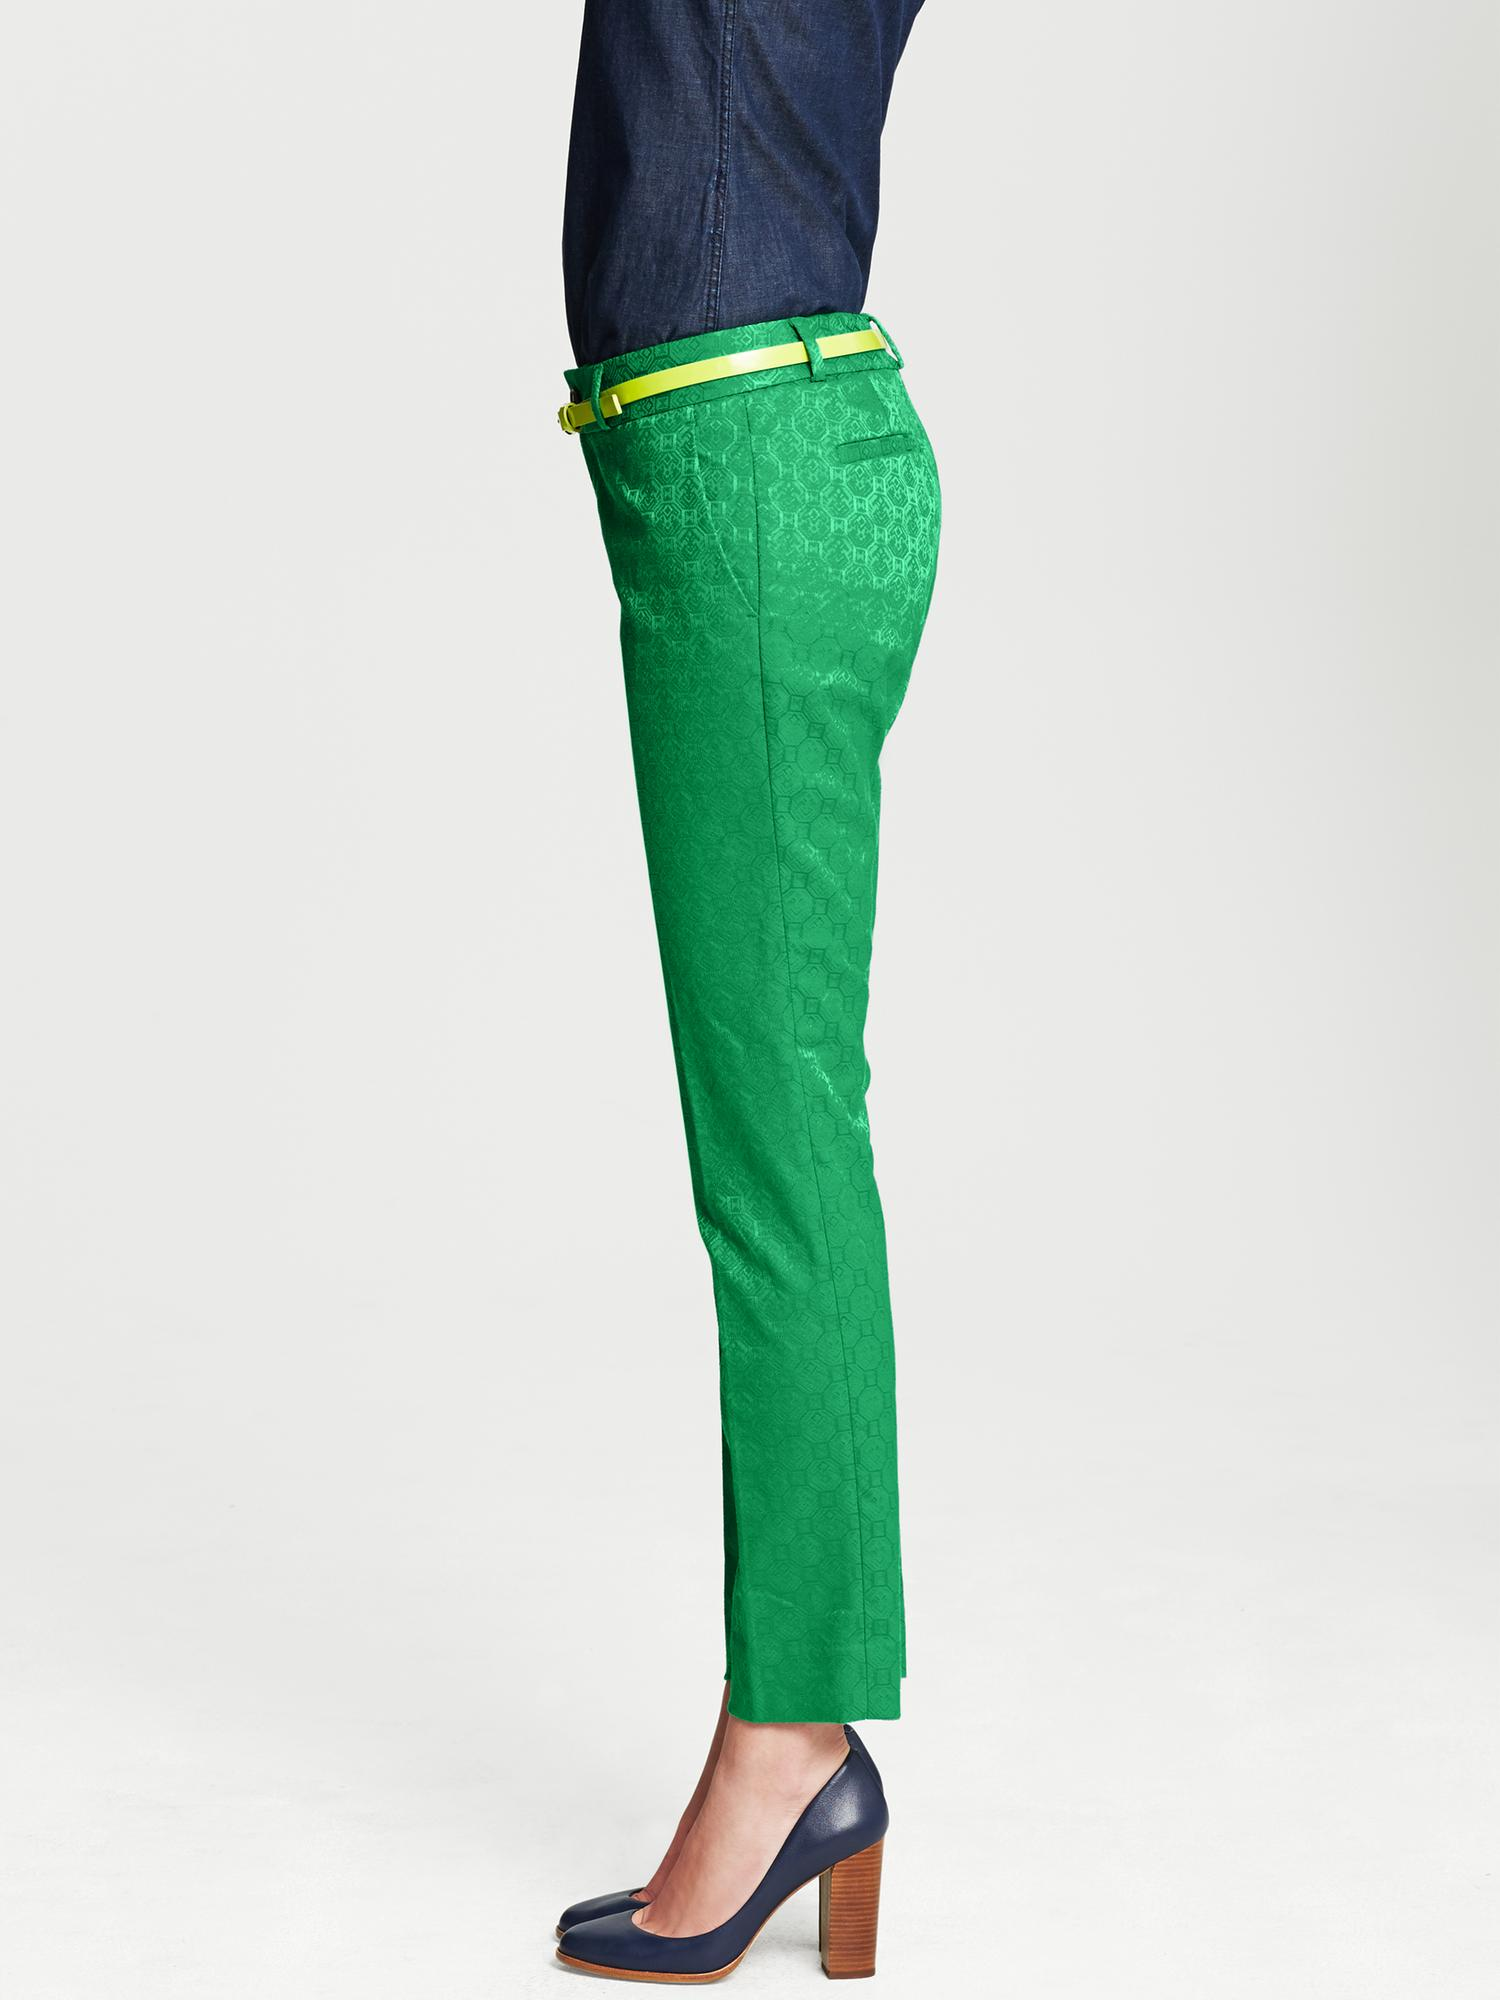 Lyst Banana Republic Camden Fit Emerald Medallion Print Ankle Pant Emerald In Green